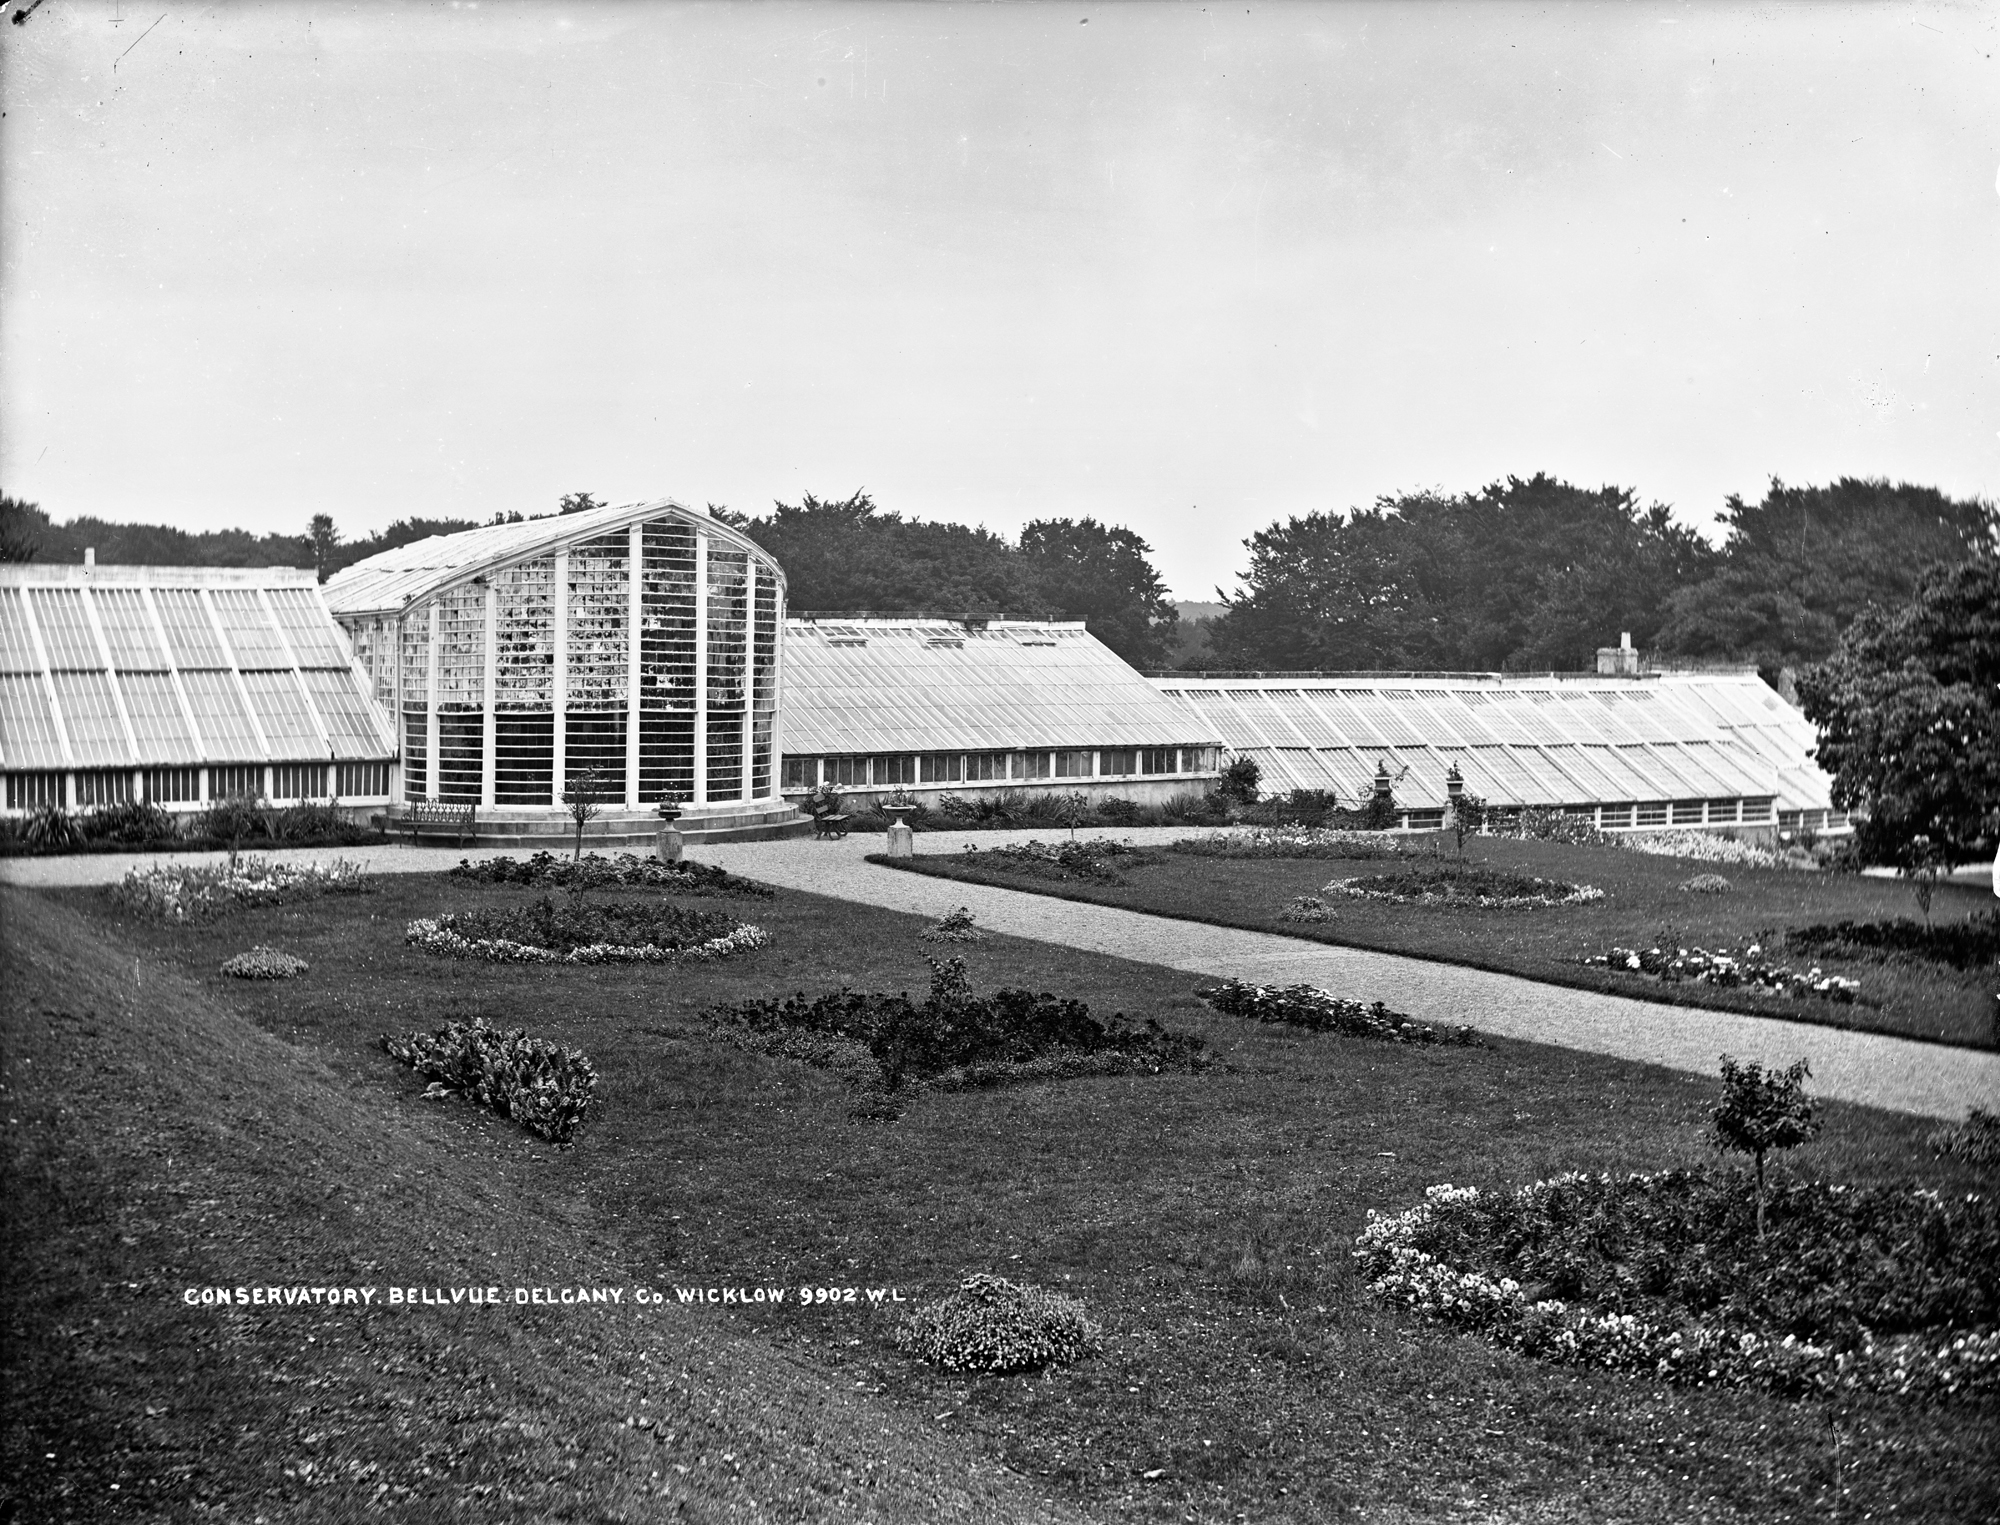 Bellevue Conservatory, Delgany, Co. Wicklow